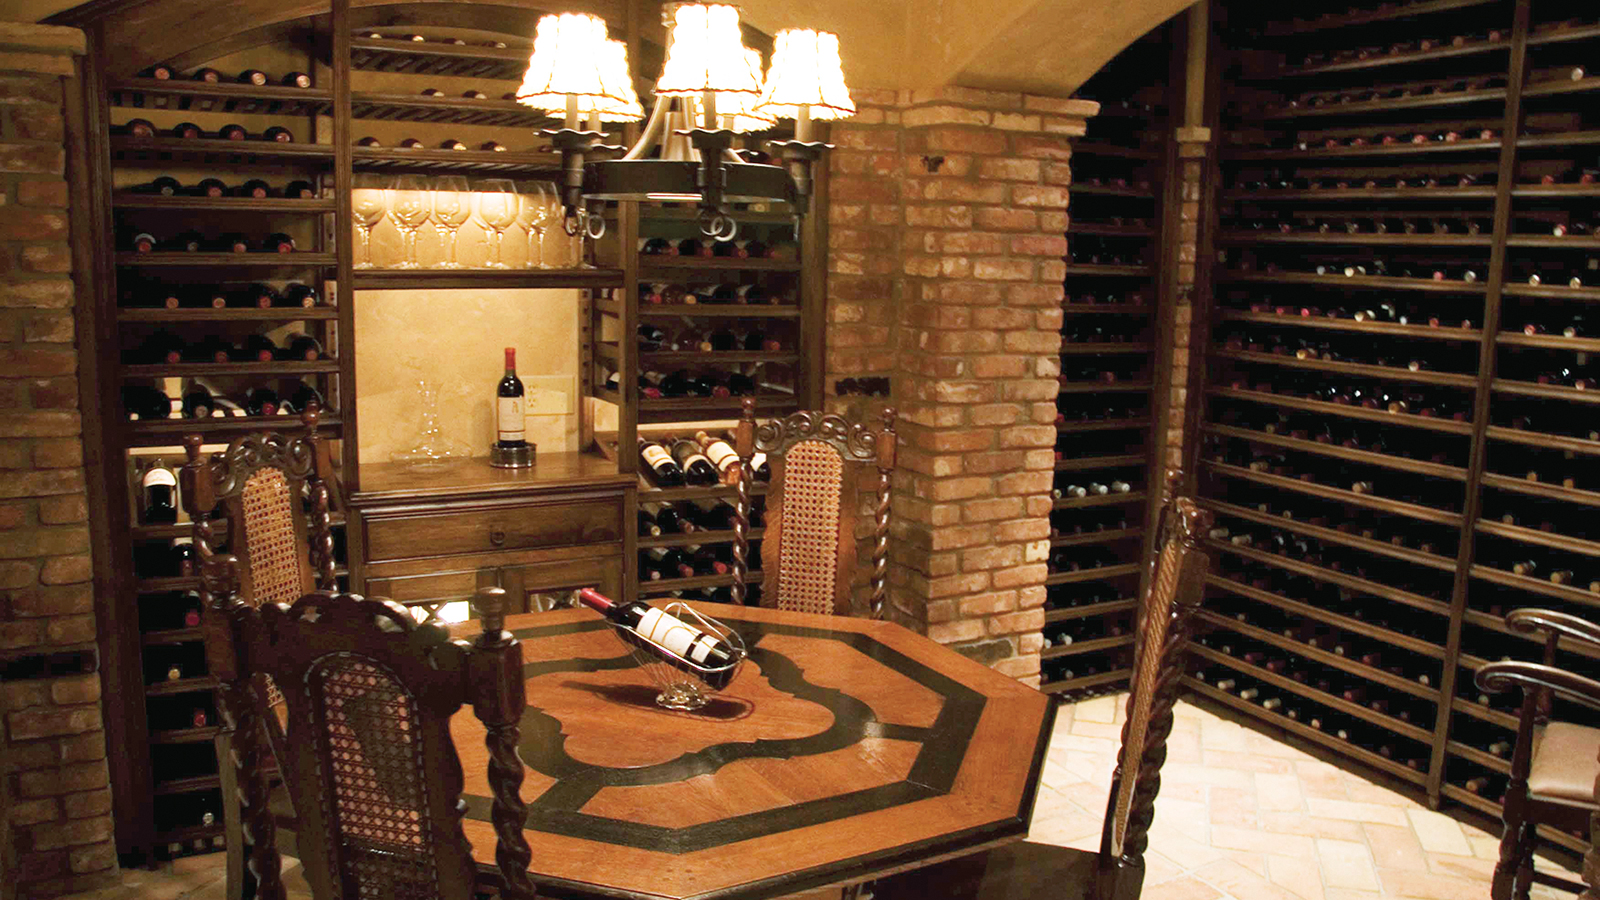 Expensive wine cellar built in basement private cellars for Building wine cellar